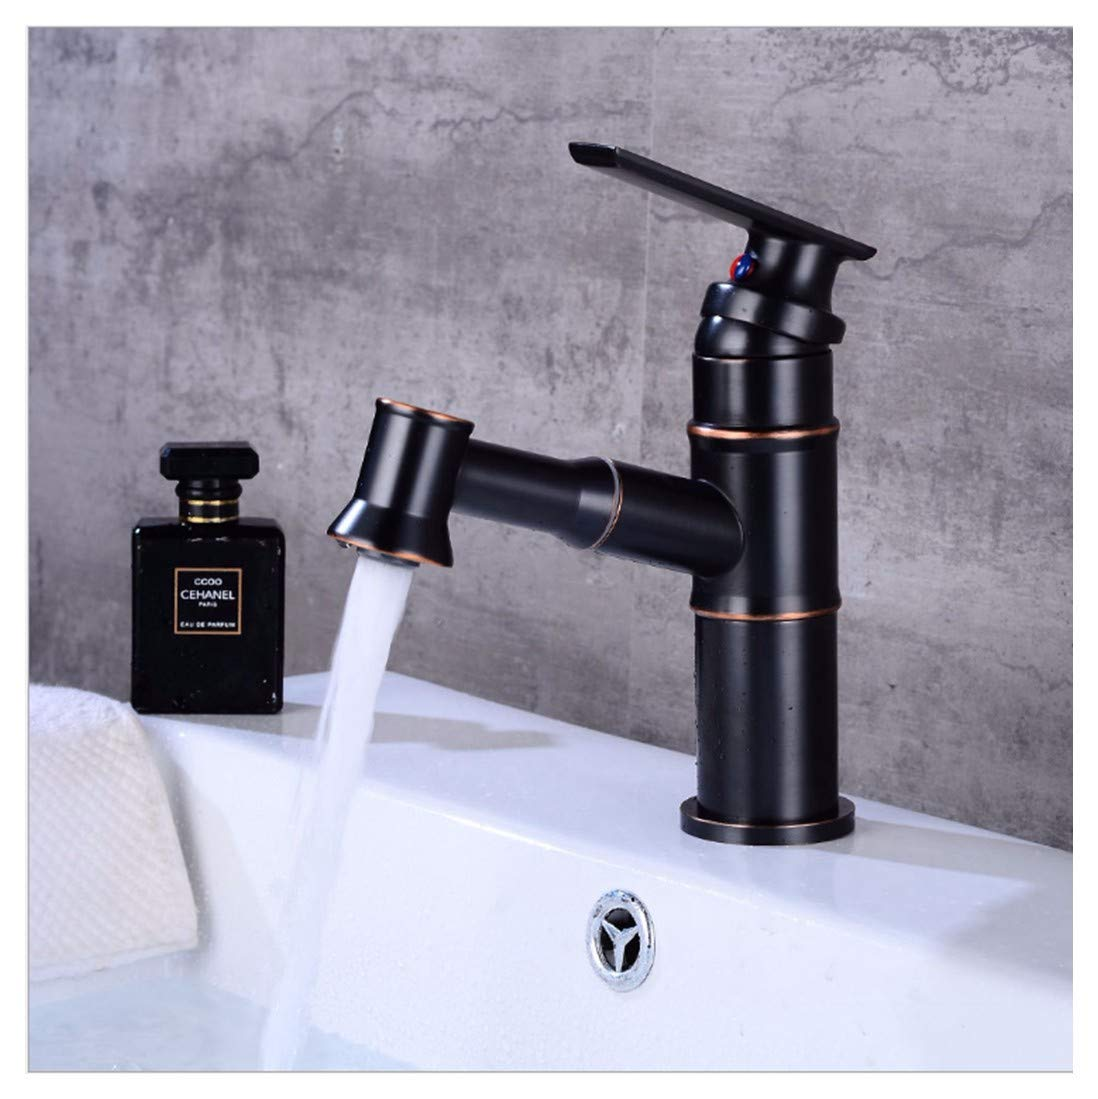 PatTheTap Retro Faucet Vintage Black Brass Tap Bathroom Washasin Water Tap Hot and Cold Mixing Water-Tap Pull Out Round Seat 1-Hole 1 Handle